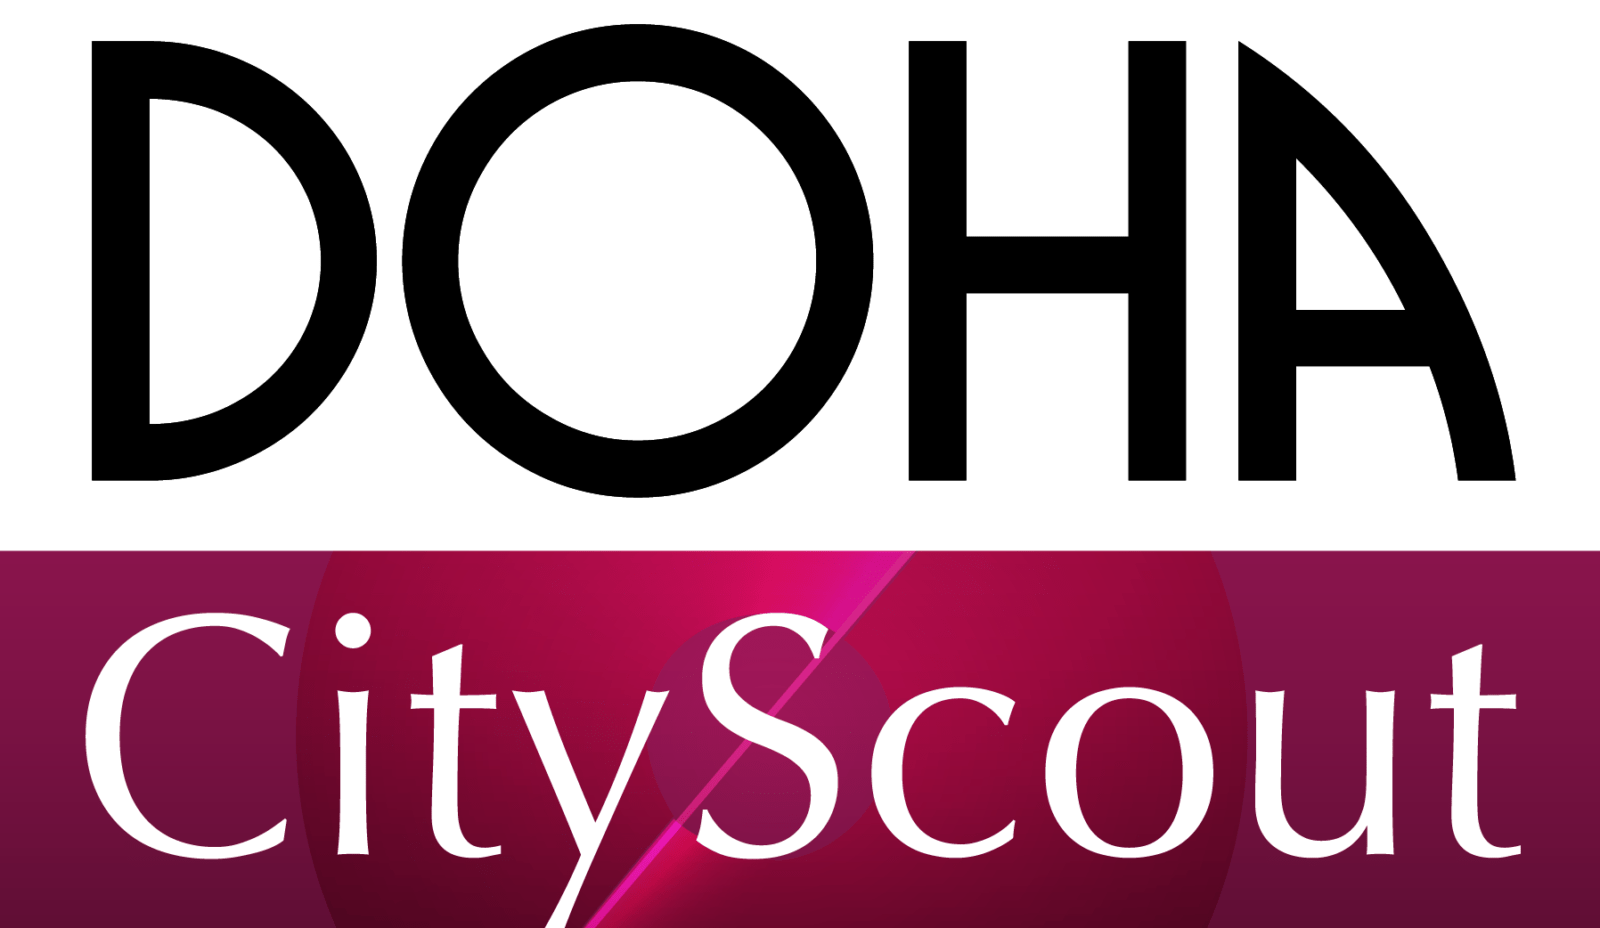 Doha City Scout